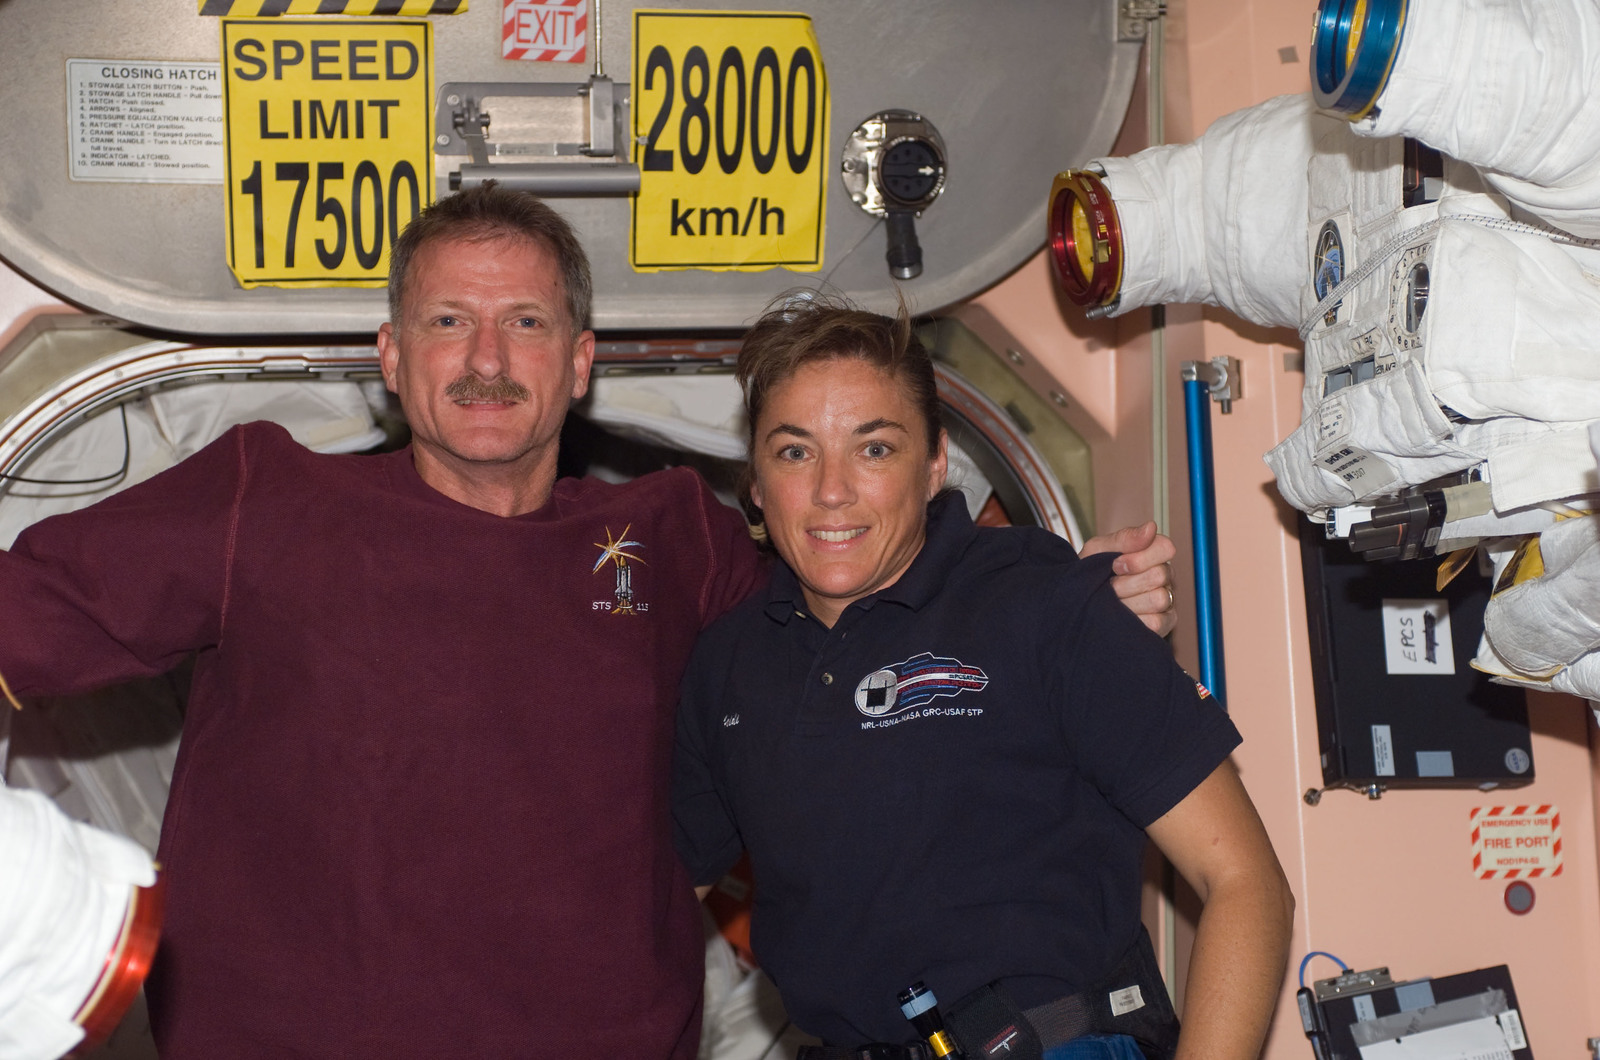 S115E07385 - STS-115 - STS-115 MS Tanner and Stefanyshyn-Piper pose at the Node 1 hatch area during Joint Operations